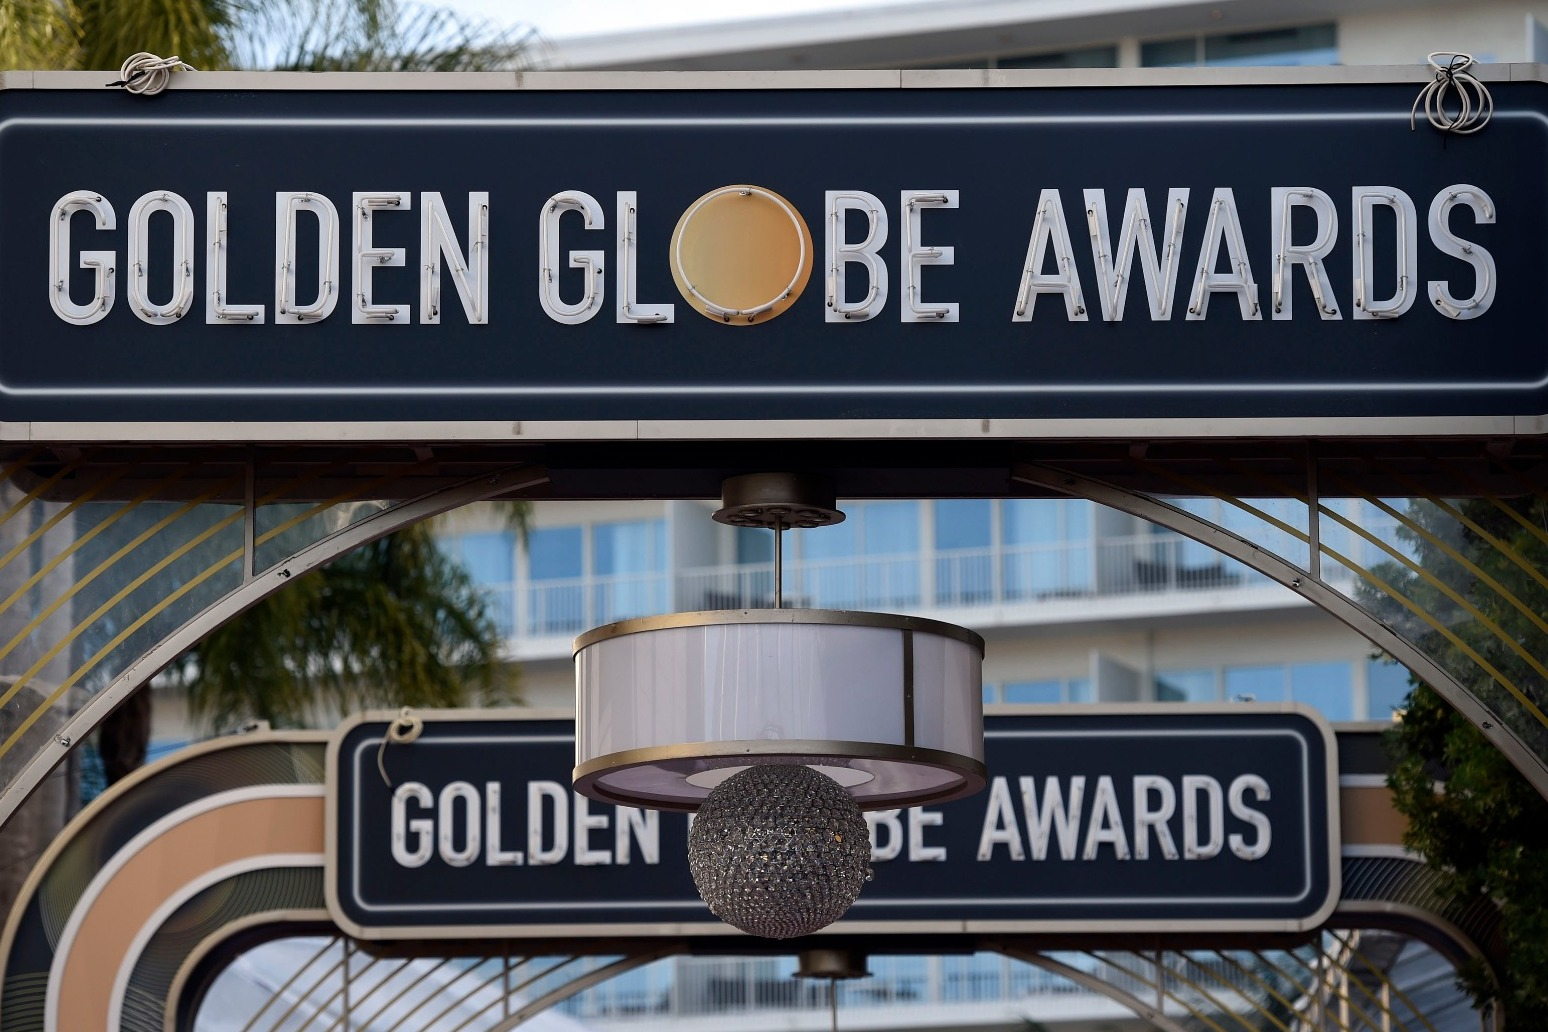 PHOEBE WALLER-BRIDGE AND OLIVIA COLMAN LEAD RAFT OF BRIT WINS AT GOLDEN GLOBES